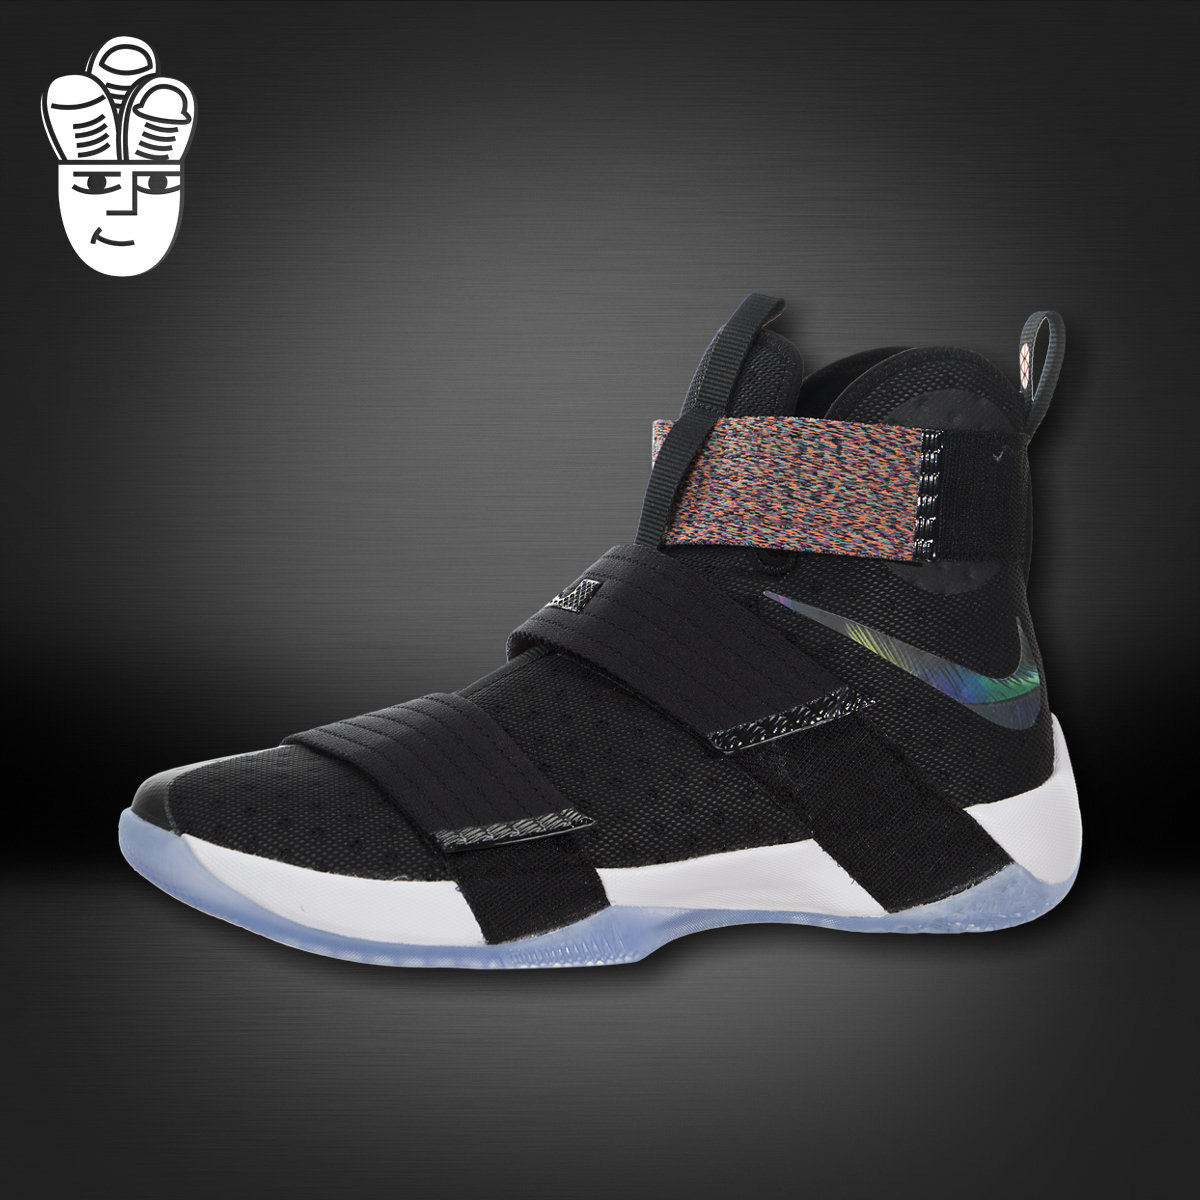 8c779fc62e12 Get Quotations · 10 nike men s nike lebron soldier soldier james 10  generation high help combat basketball shoes